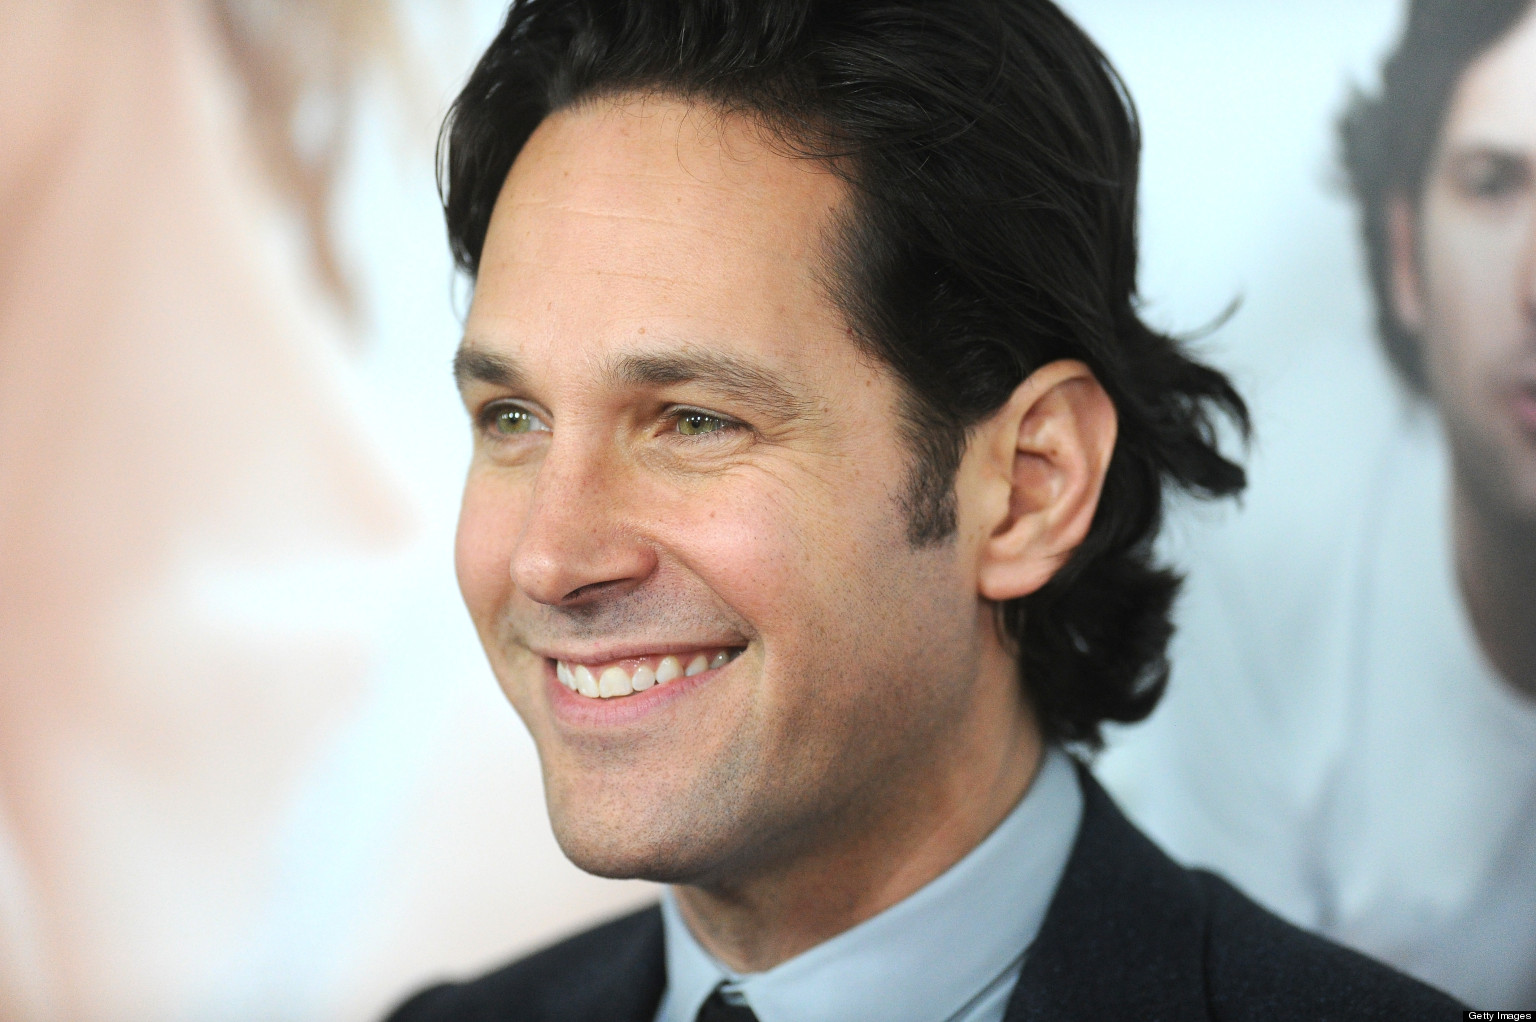 paul rudd moviespaul rudd height, paul rudd wife, paul rudd instagram, paul rudd clueless, paul rudd movies, paul rudd dancing gif, paul rudd dance, paul rudd lip sync, paul rudd conan, paul rudd wiki, paul rudd twitter, paul rudd one direction, paul rudd julie yaeger, paul rudd snl, paul rudd films, paul rudd halloween, paul rudd ... darren, paul rudd tim and eric, paul rudd wdw, paul rudd conan o'brien